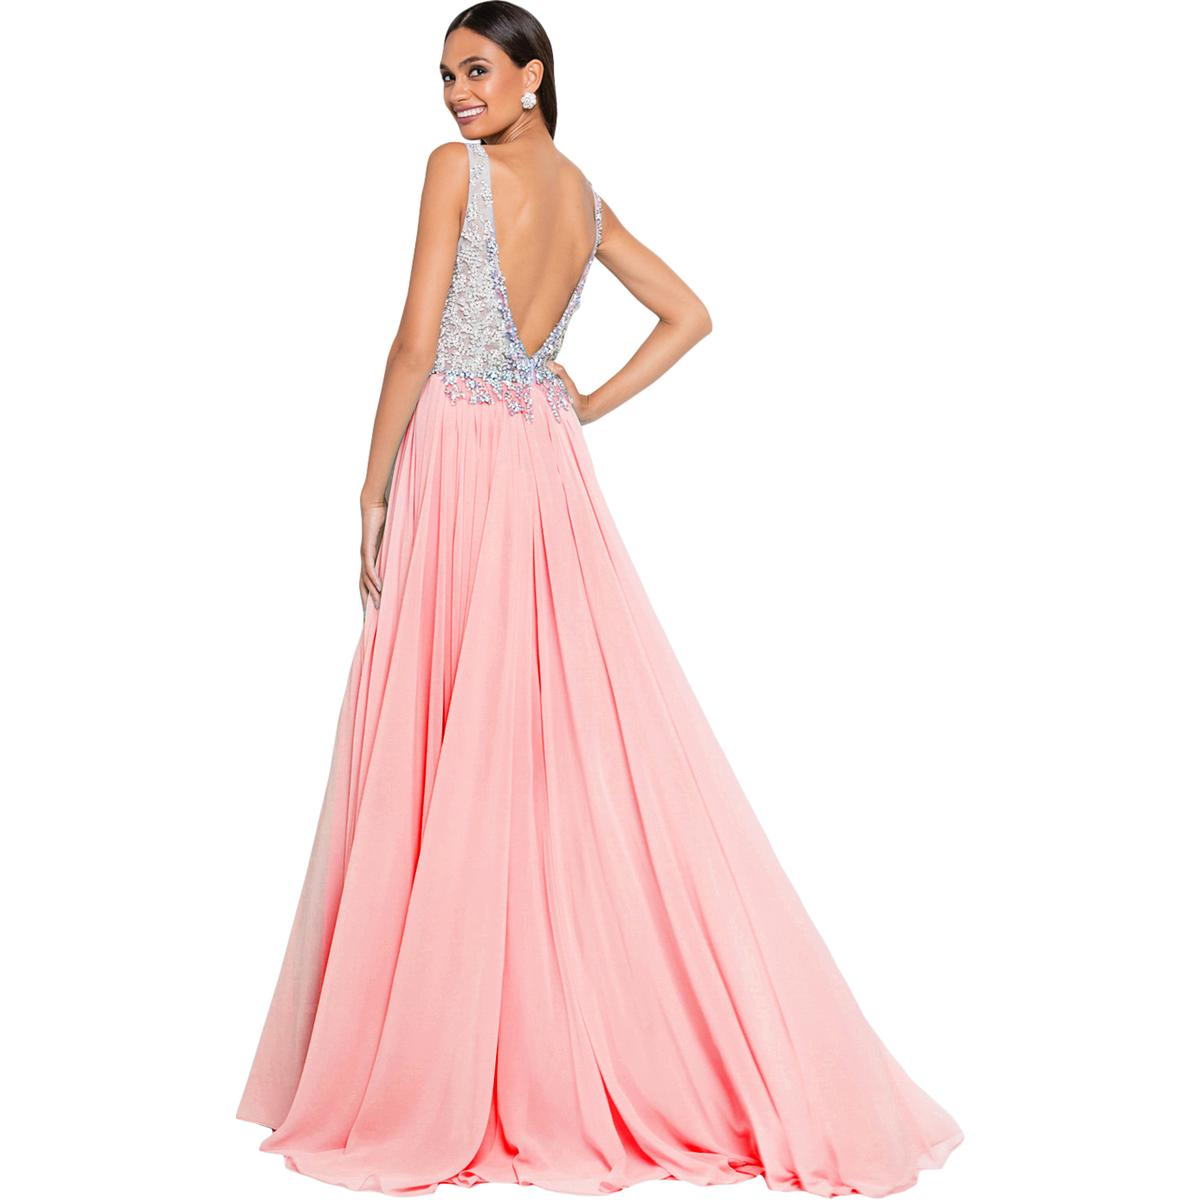 460a5356034 Terani Couture Pink Prom Beaded Evening Dress Gown Plus 18 BHFO 9421. About  this product. Picture 1 of 4  Picture 2 of 4  Picture 3 of 4  Picture 4 of 4